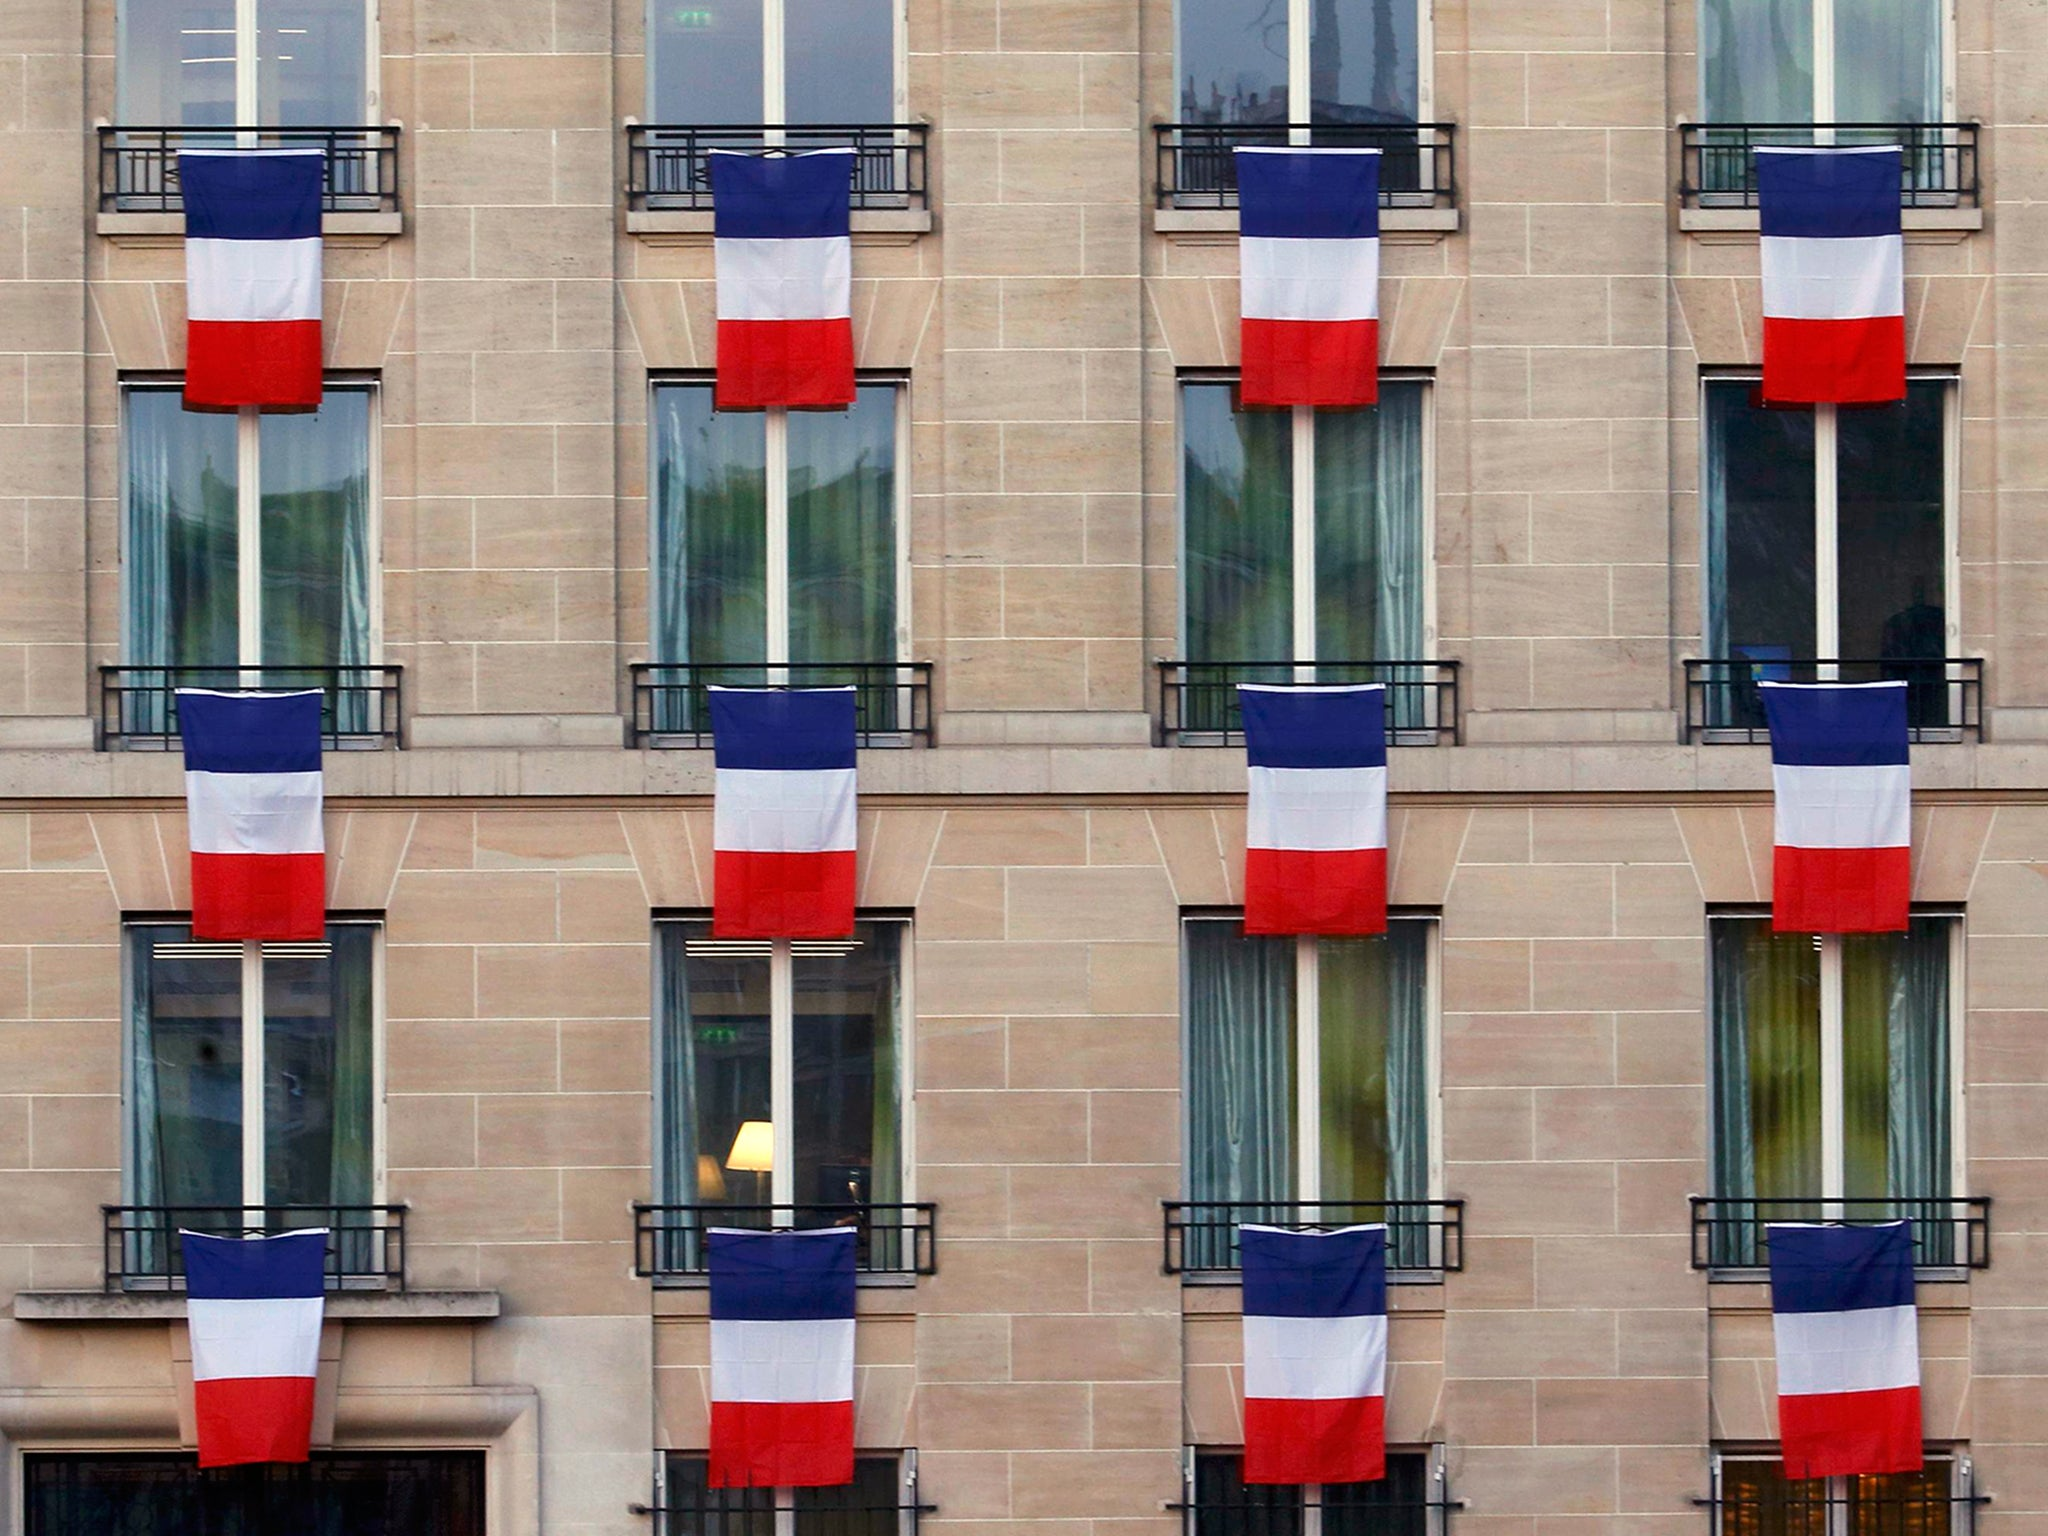 Brexit: More French people want UK to leave the EU than to stay